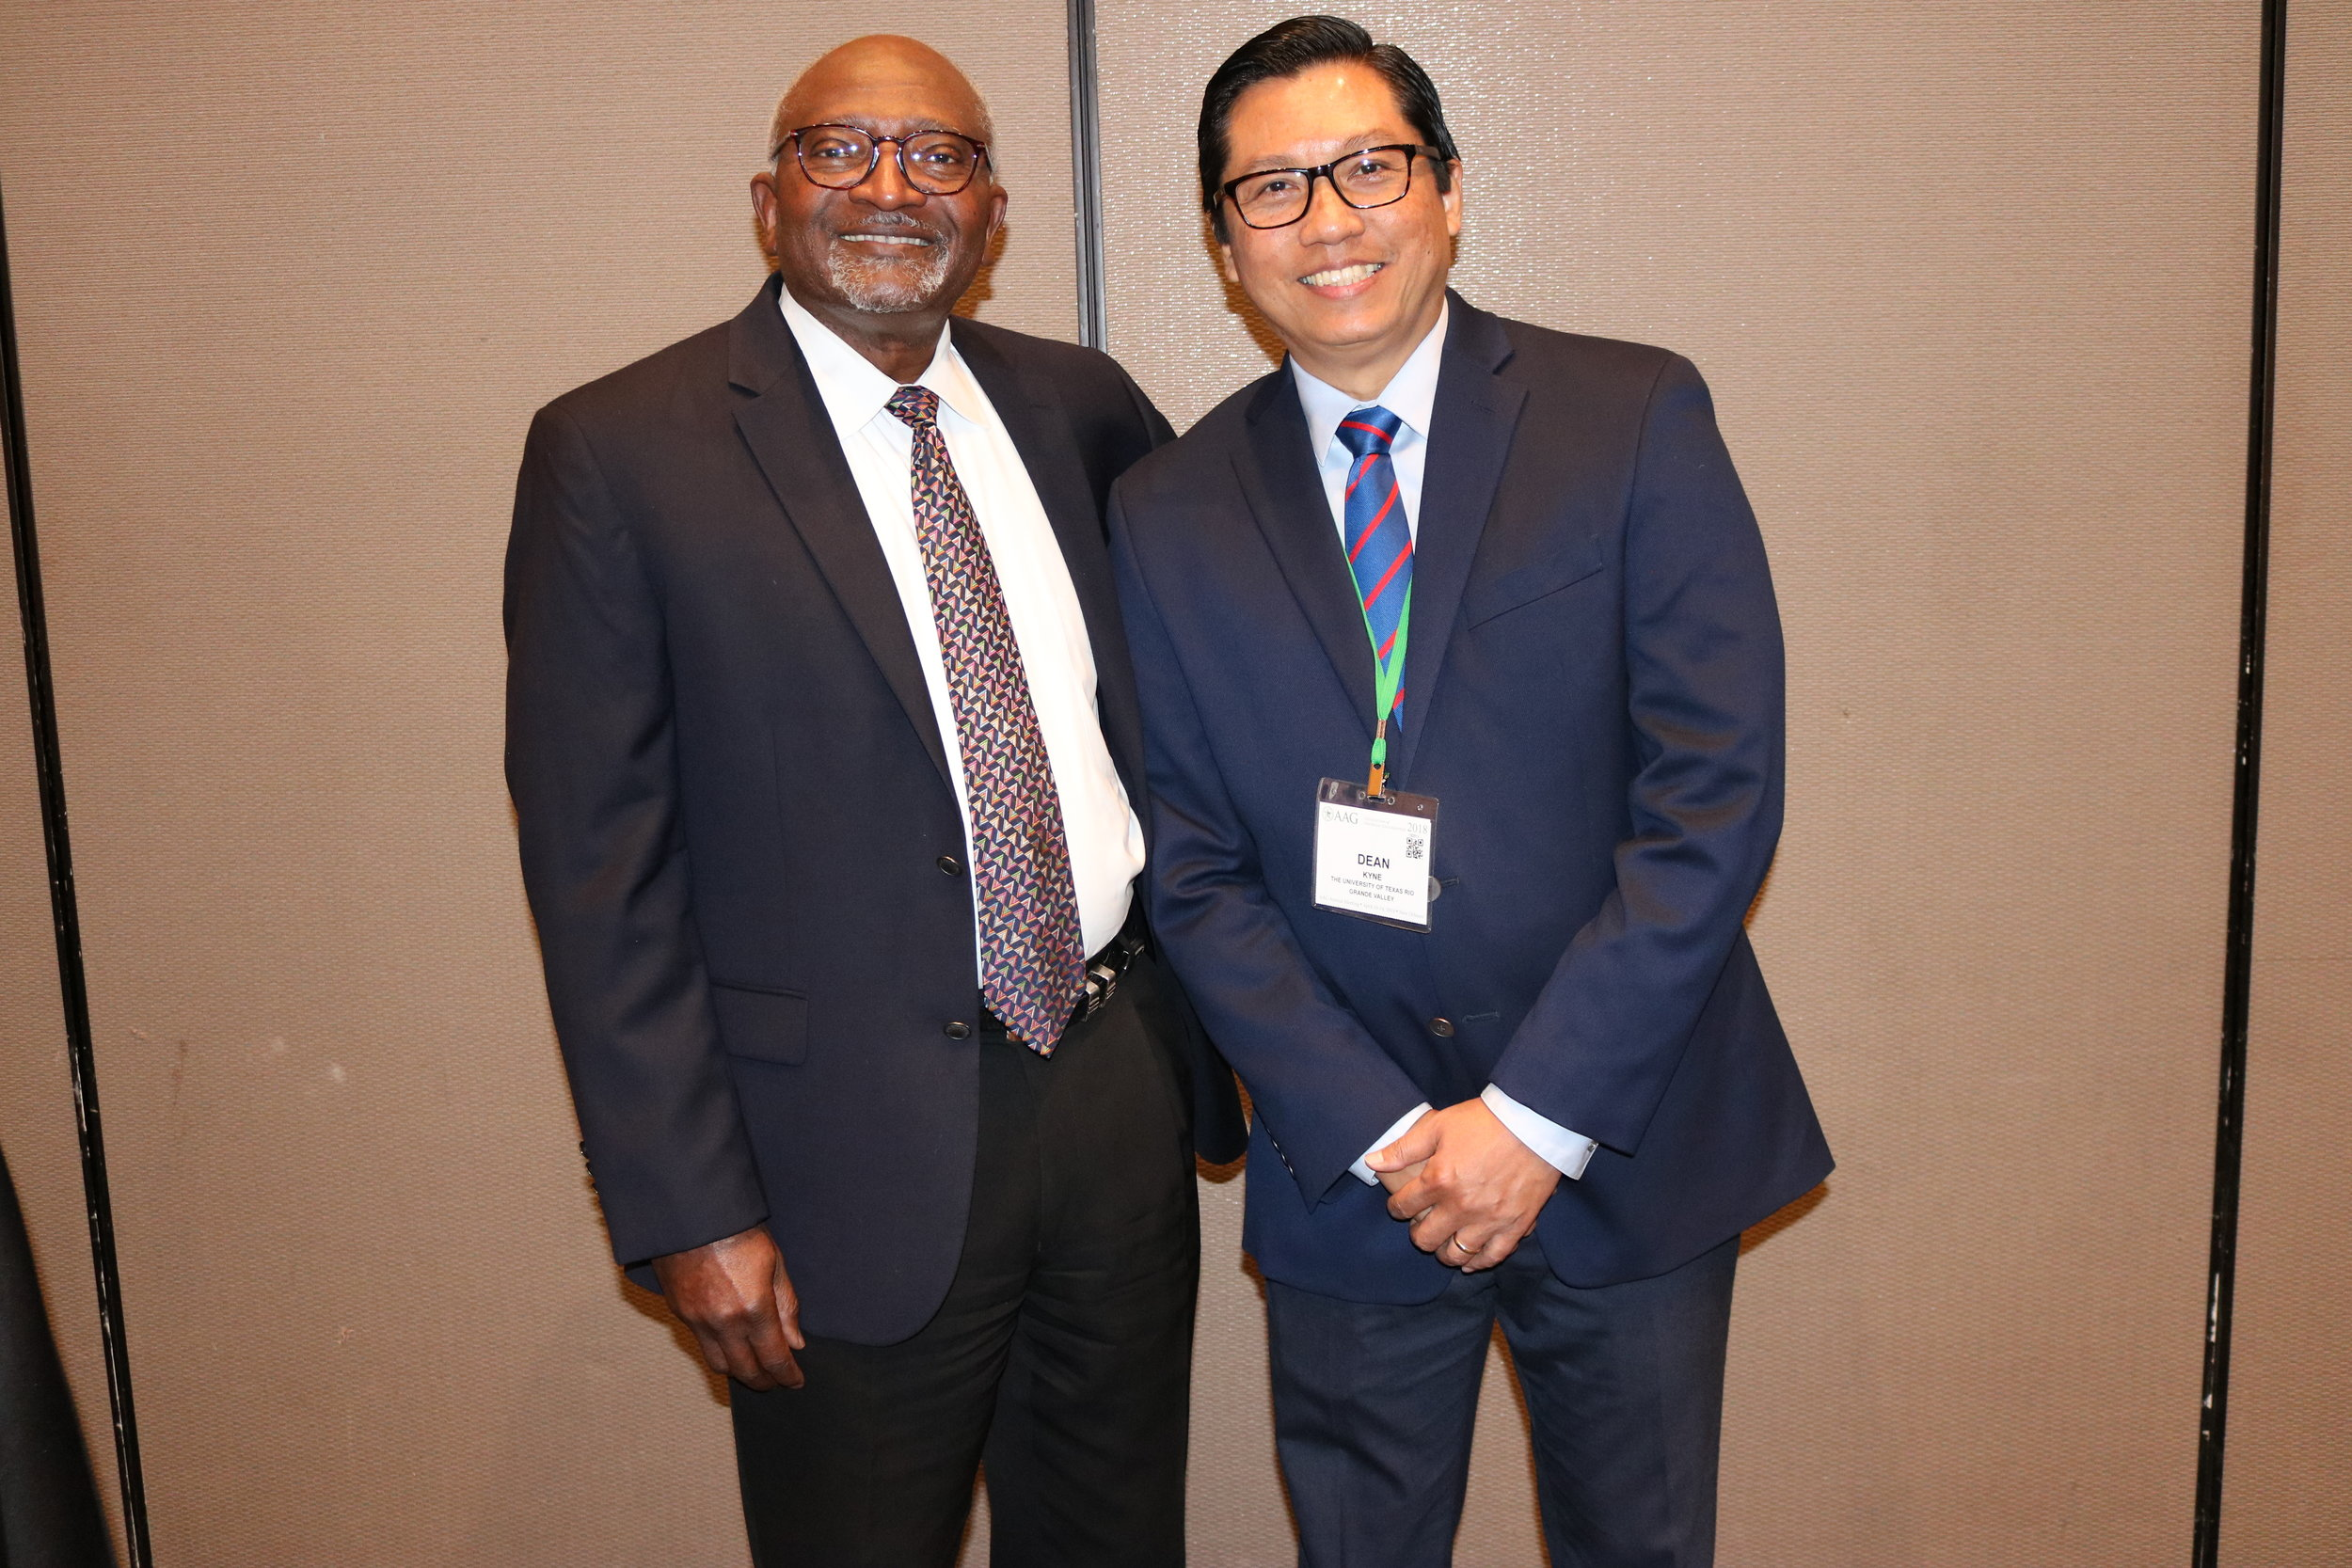 It is a great honor and pleasure to meet Dr. Robert D. Bullard, Father of Environmental Justice at the AAG Annual Meeting 2018.